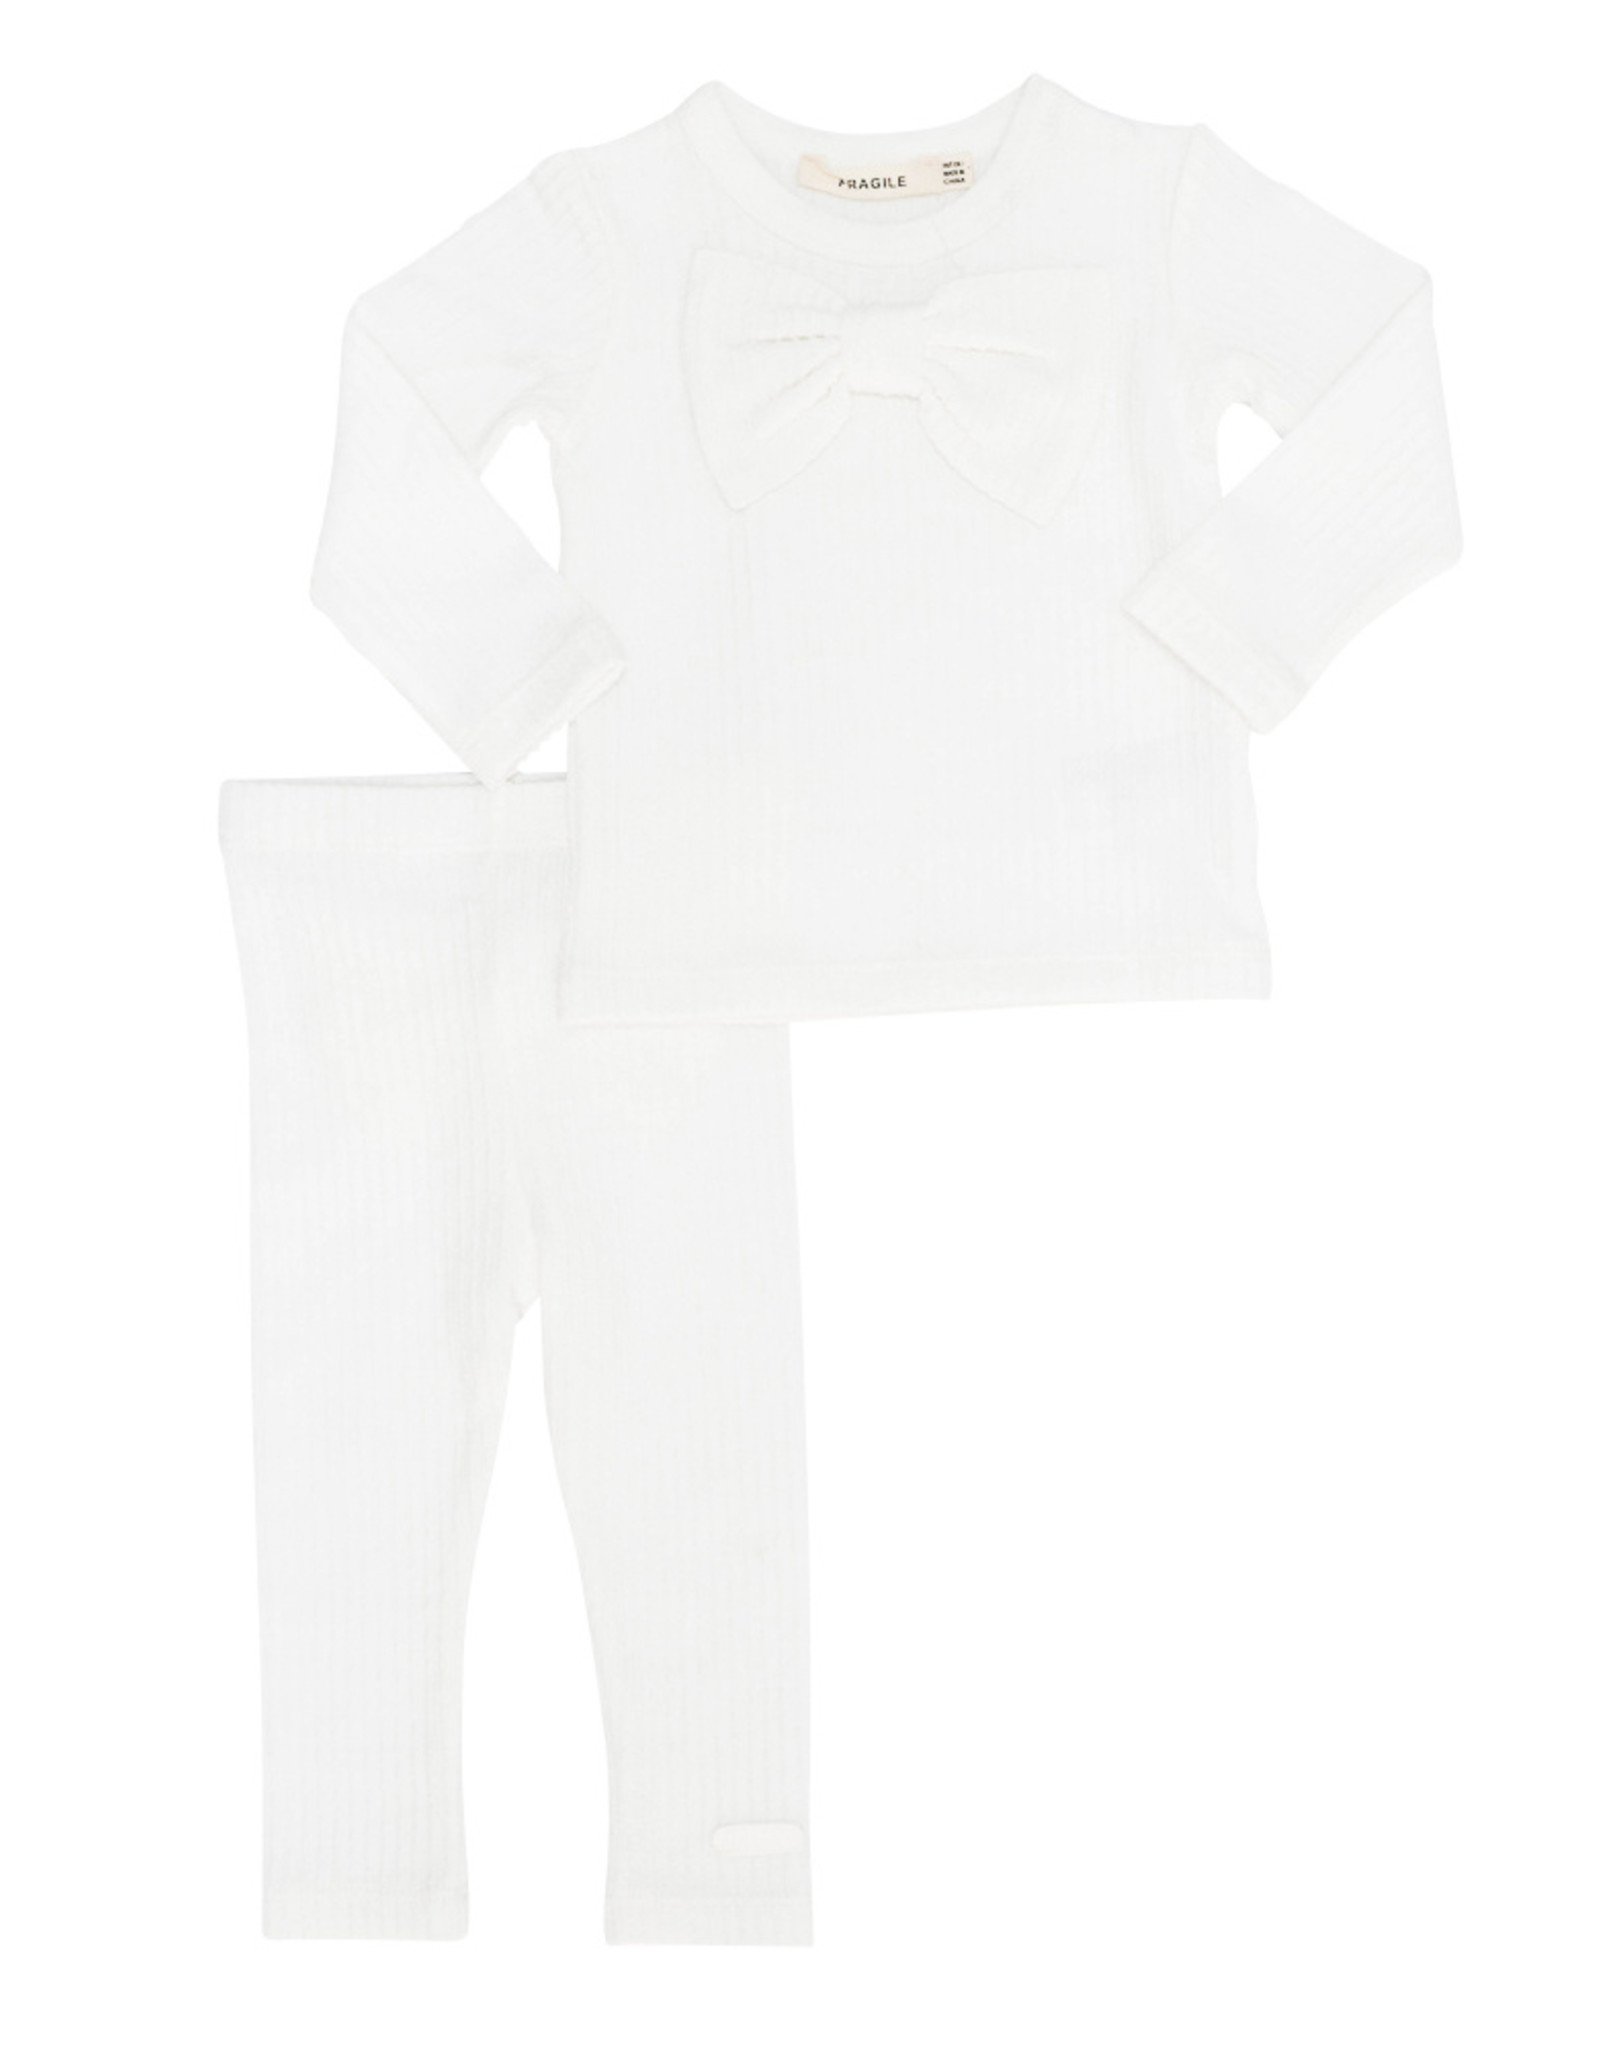 FRAGILE Fragile Ribbed Set (Top/Pants) with Bows